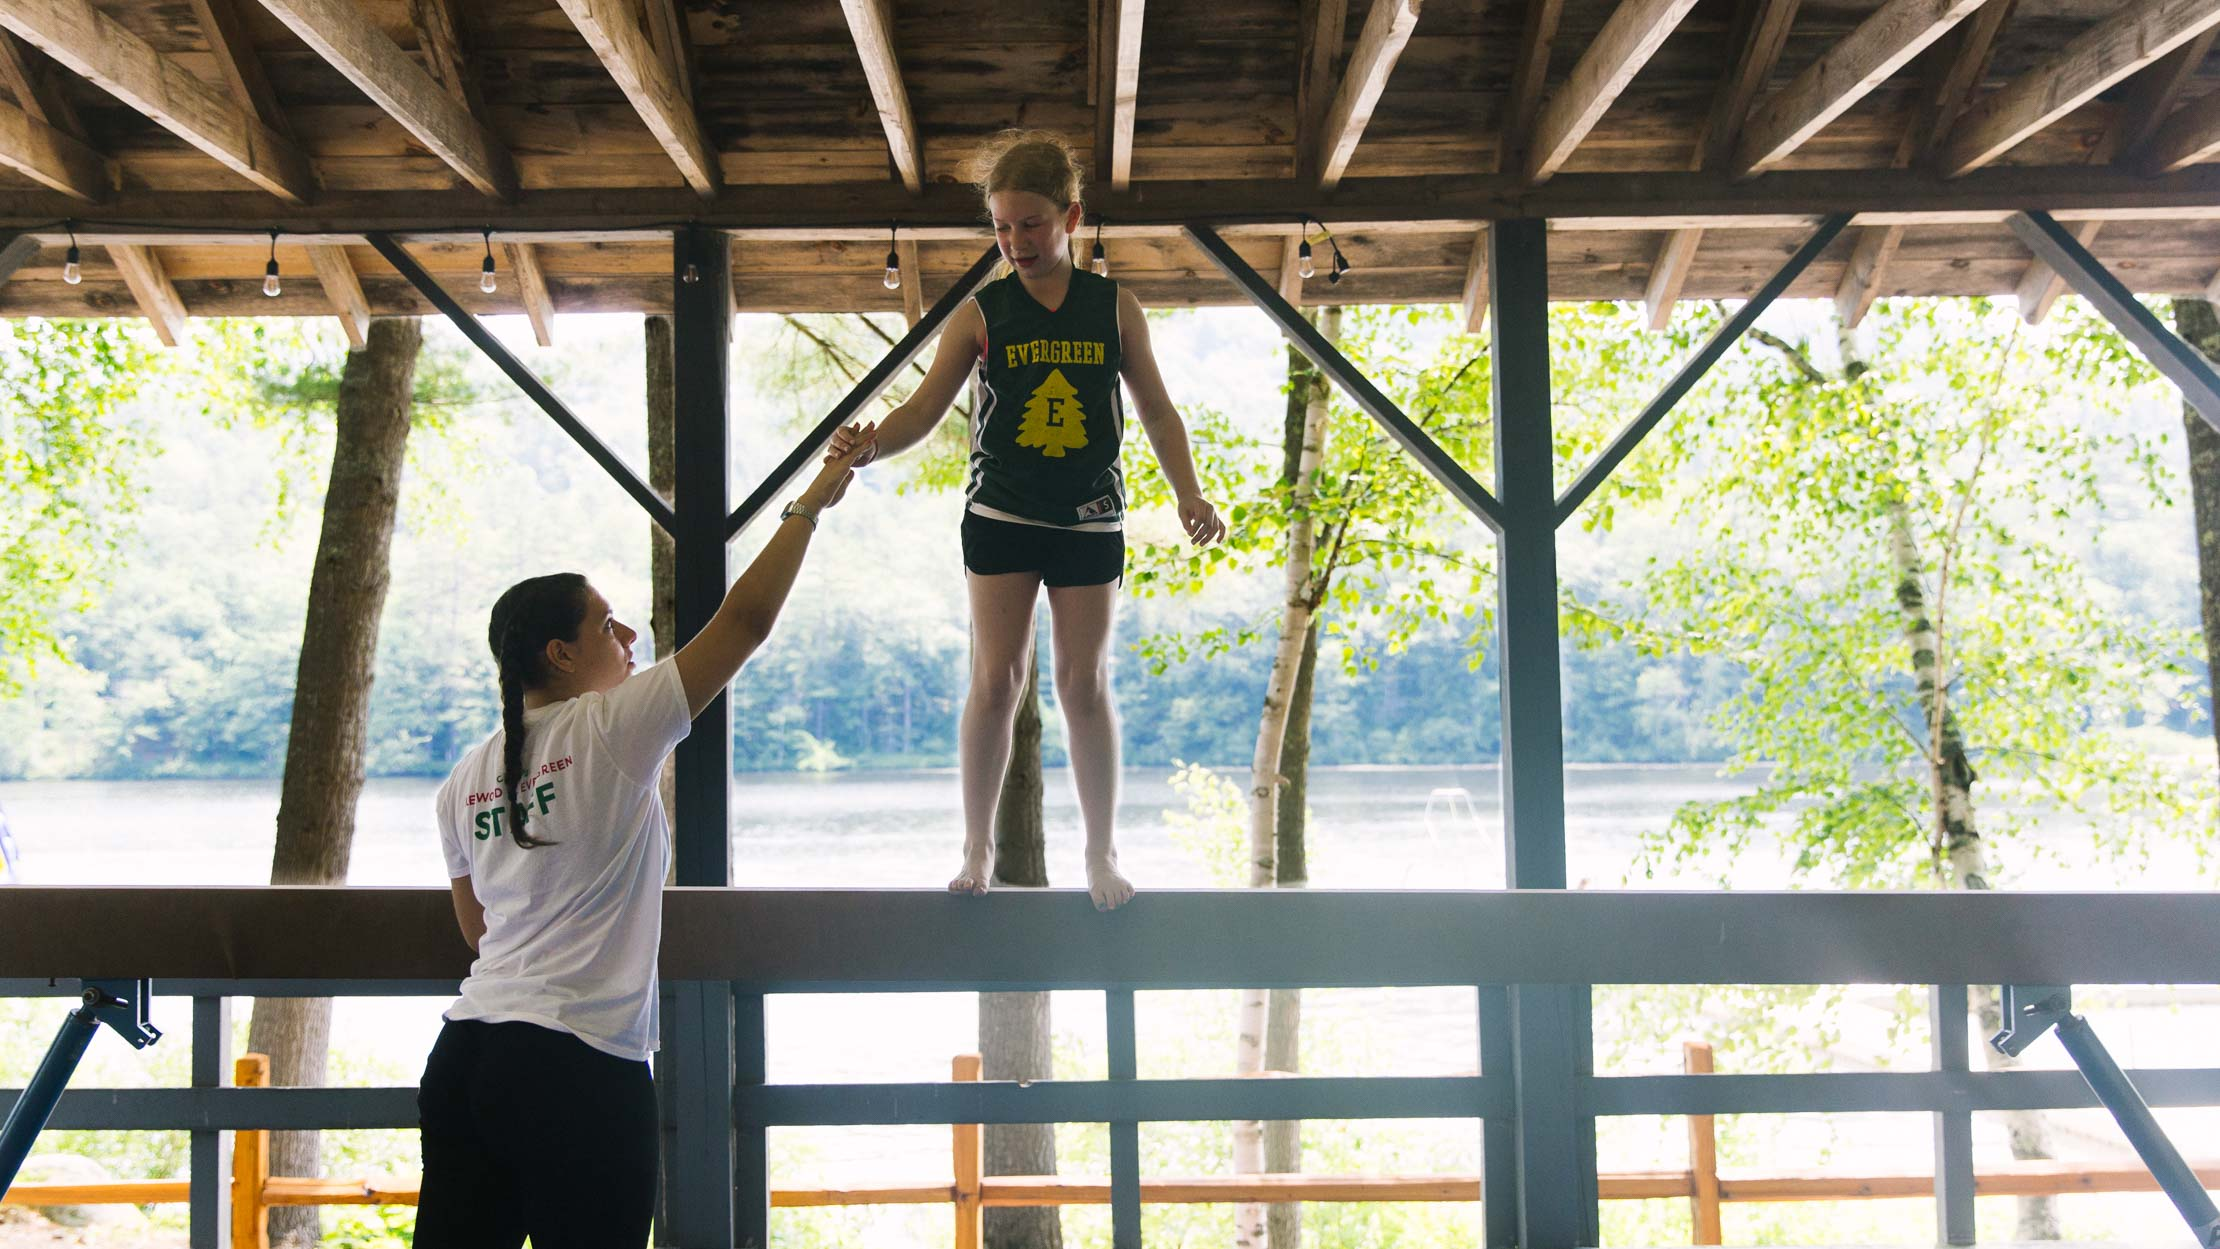 Gymnastics instructor helping camper on balance beam